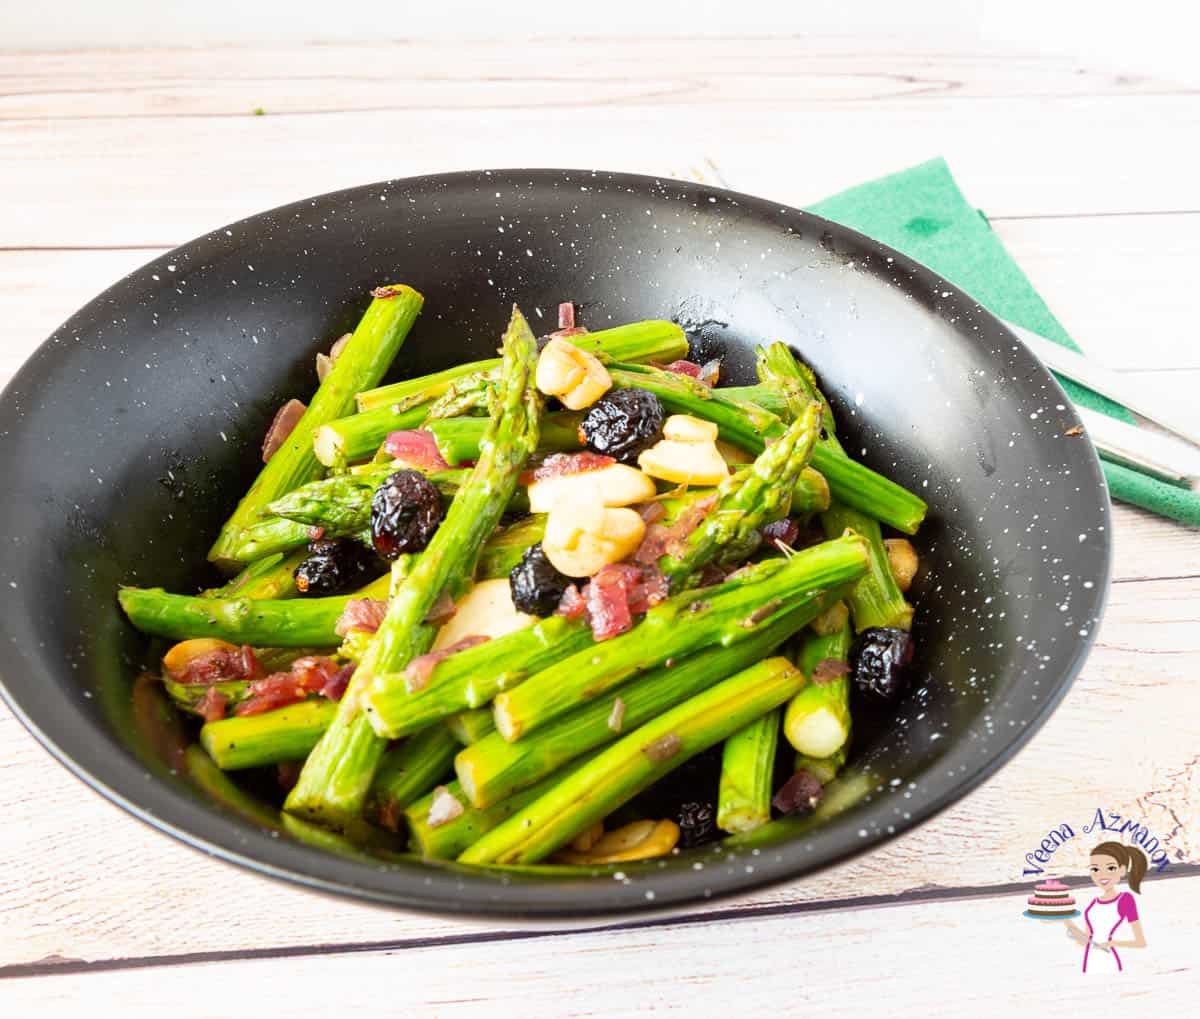 A bowl with side dish made with asparagus